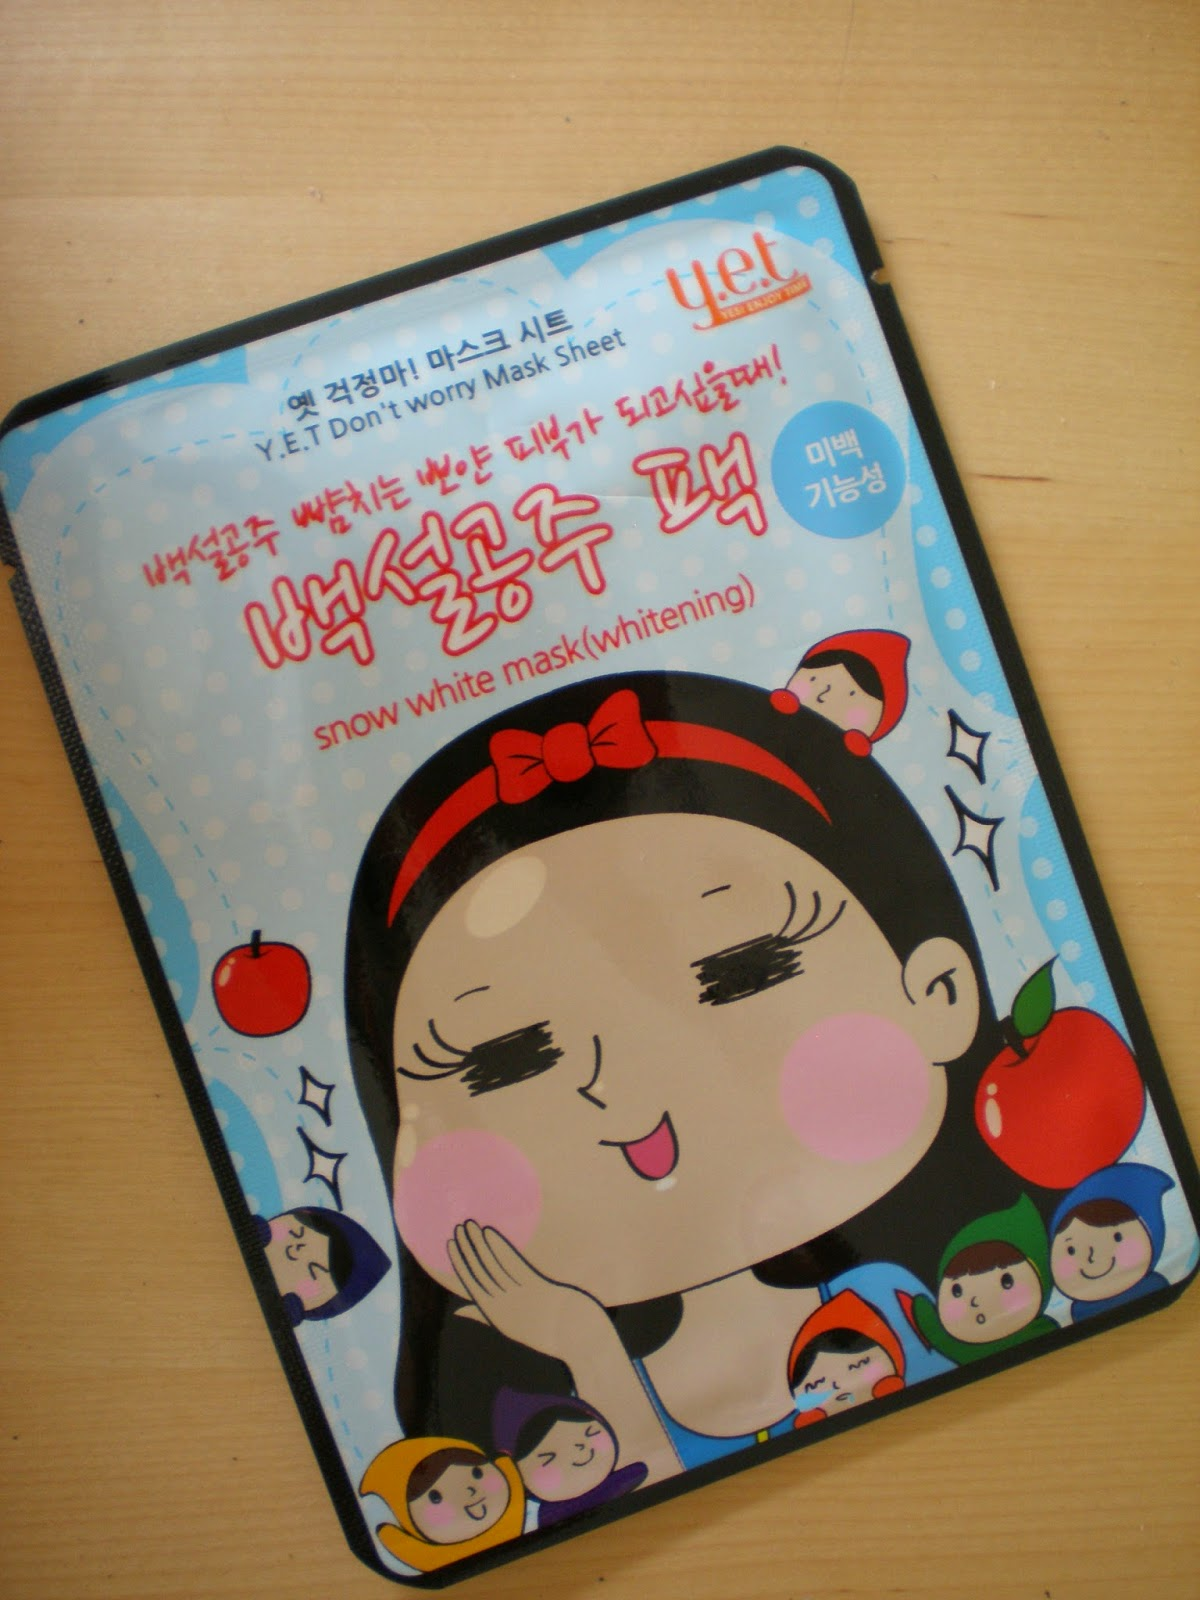 Y.E.T Don't Worry Mask Sheet in Snow White (Whitening)